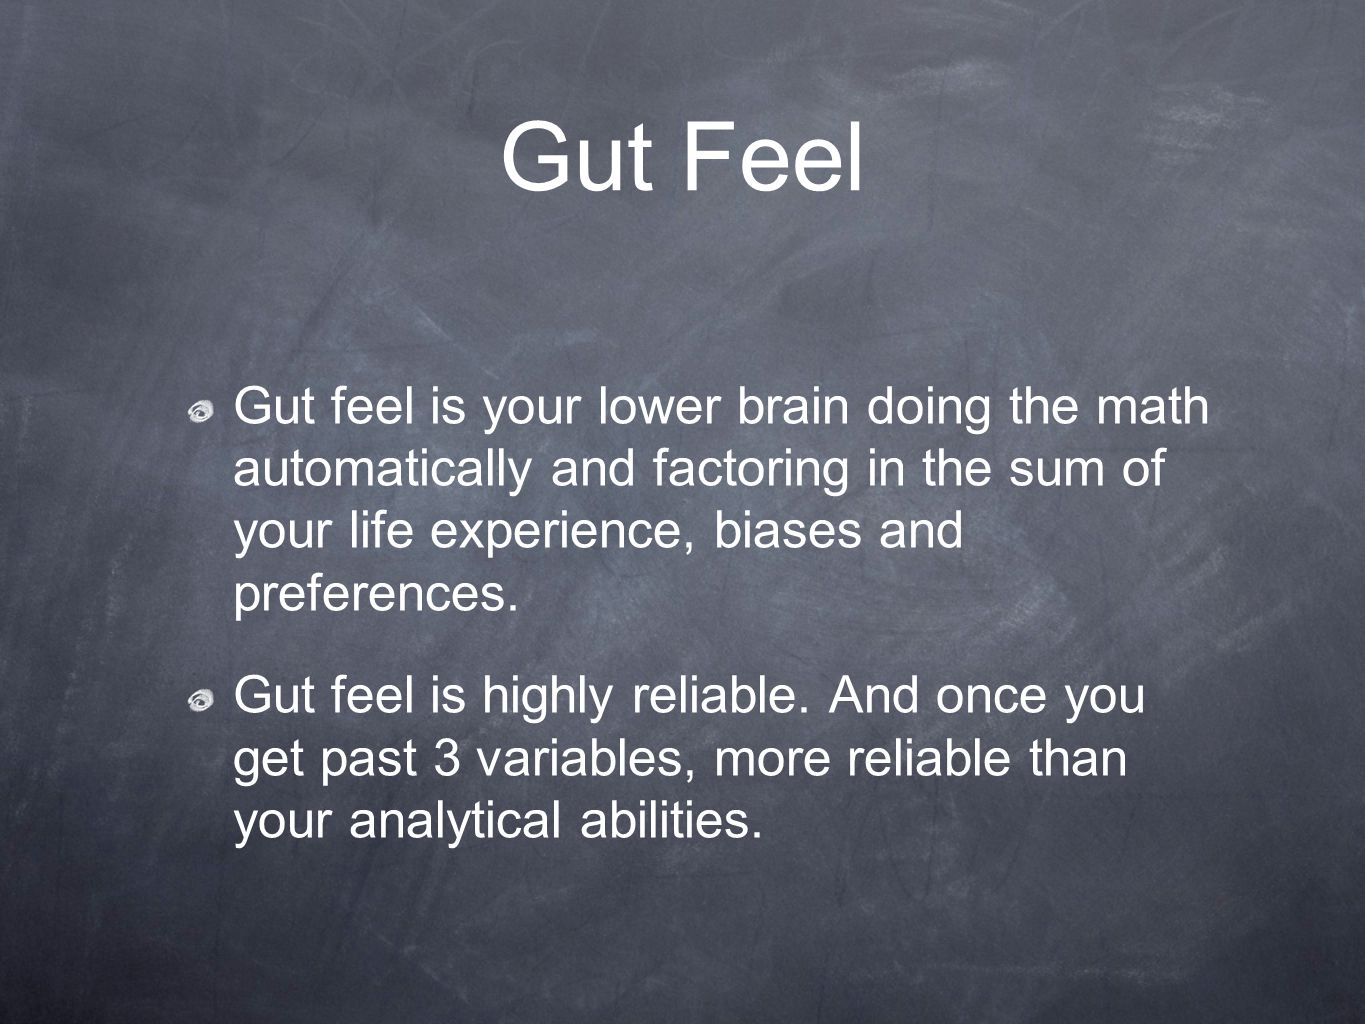 Gut feel is your lower brain doing the math automatically and factoring in the sum of your life experience, biases and preferences. Gut feel is highly